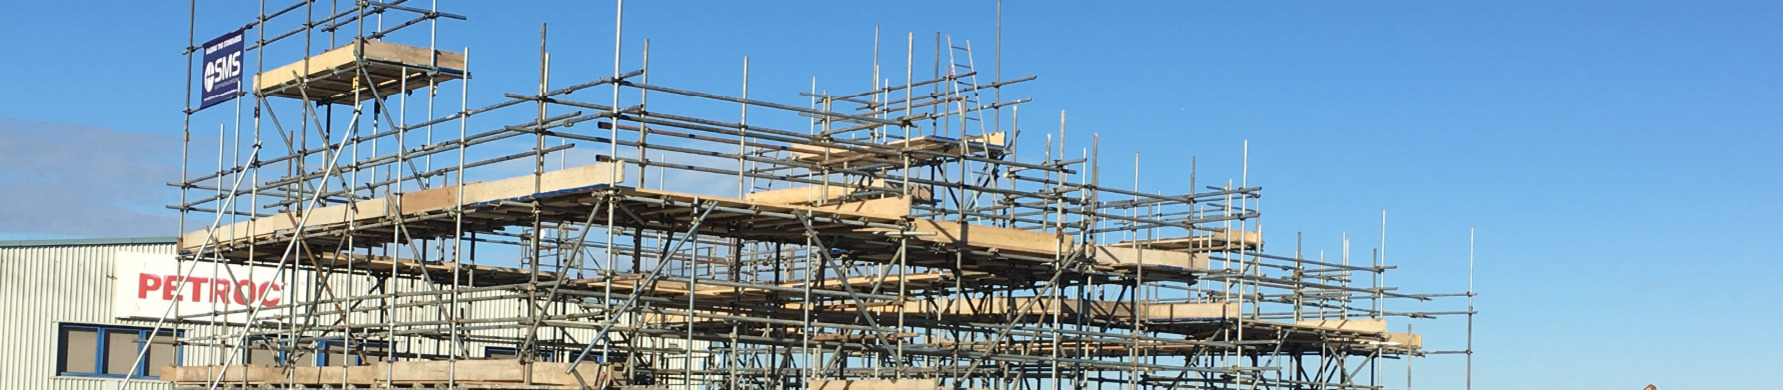 Petroc in view of Scaffolding